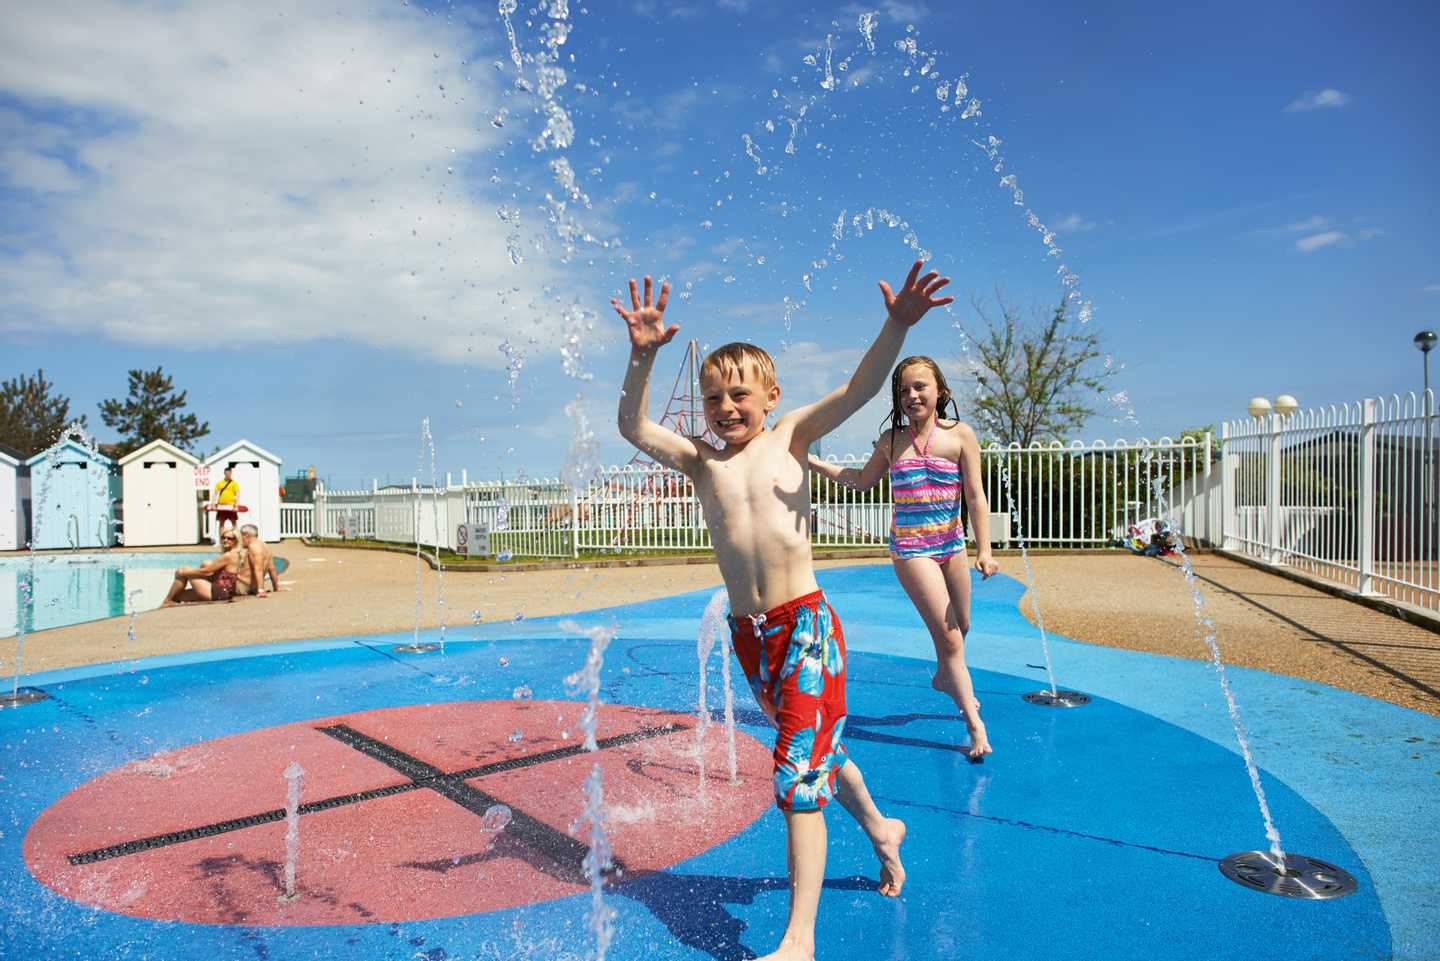 A brother and sister playing on our outdoor SplashZone